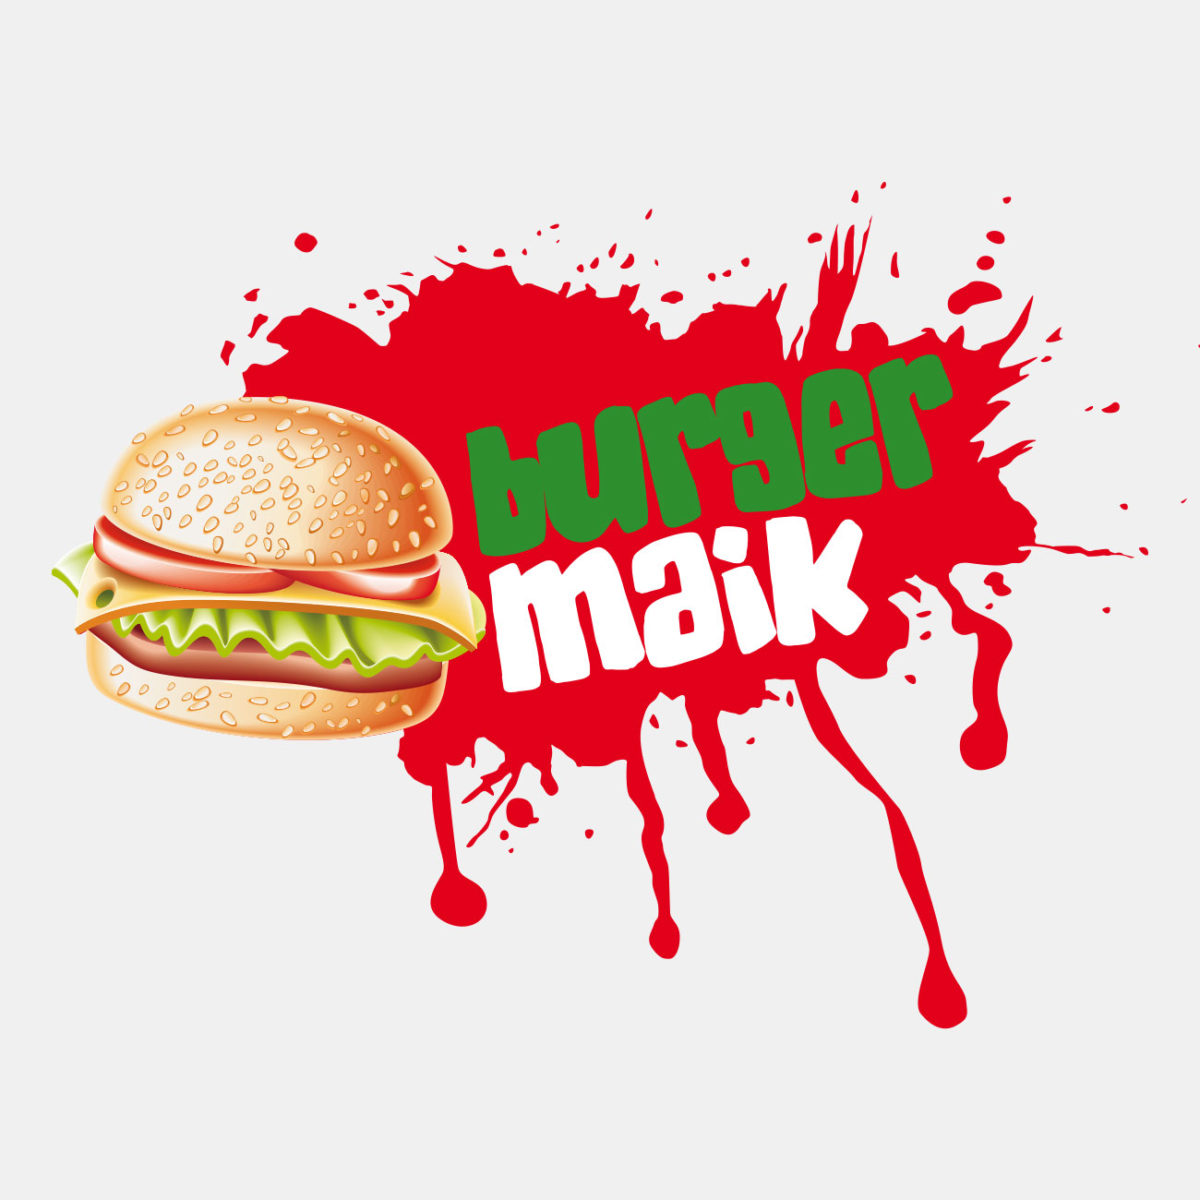 Burgermaik Logodesign